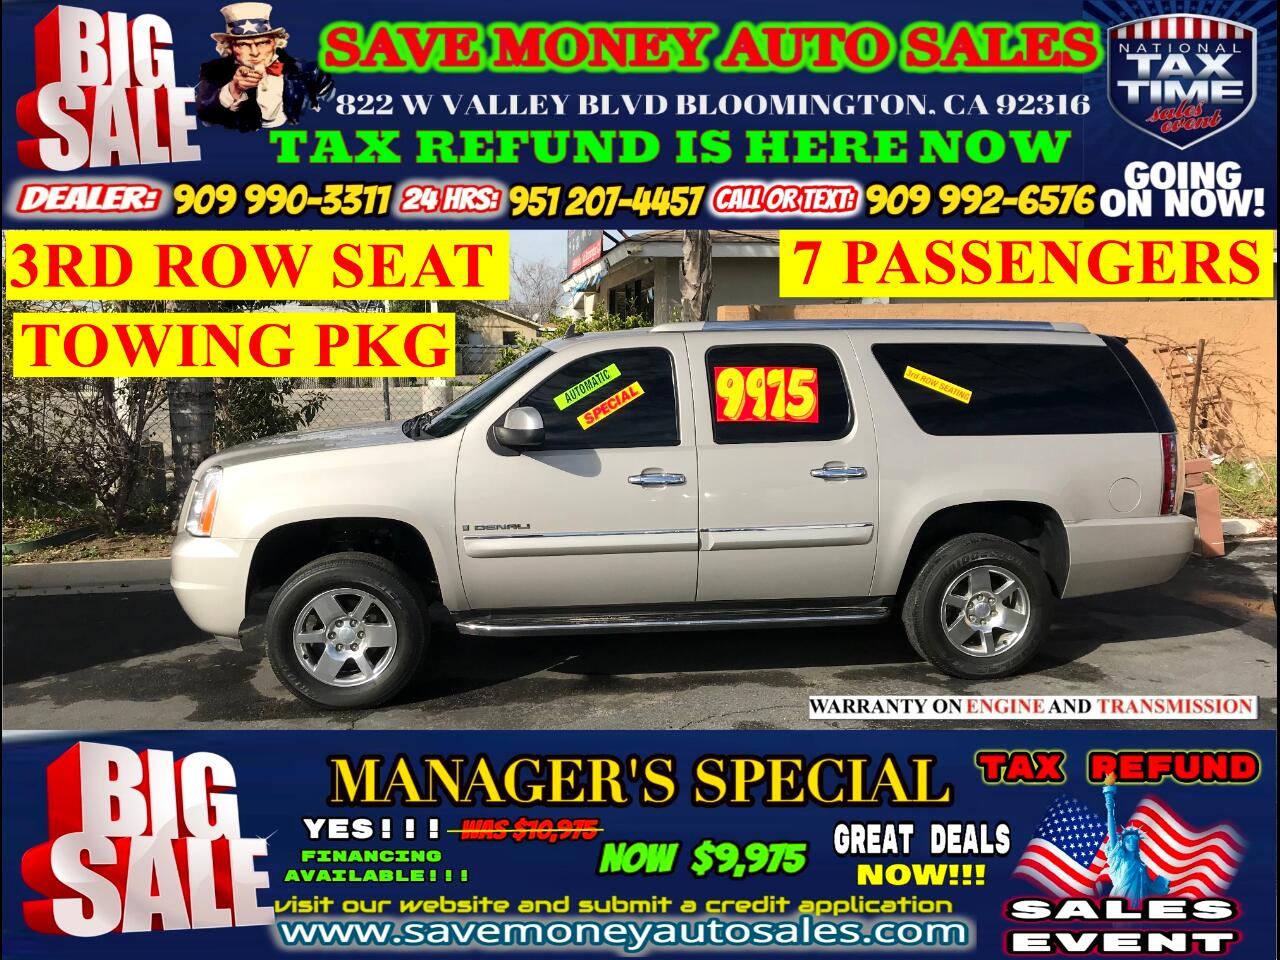 2008 GMC Yukon Denali XL AWD> 3RD ROW SEAT> TOWING PKG> FULLY LOADED